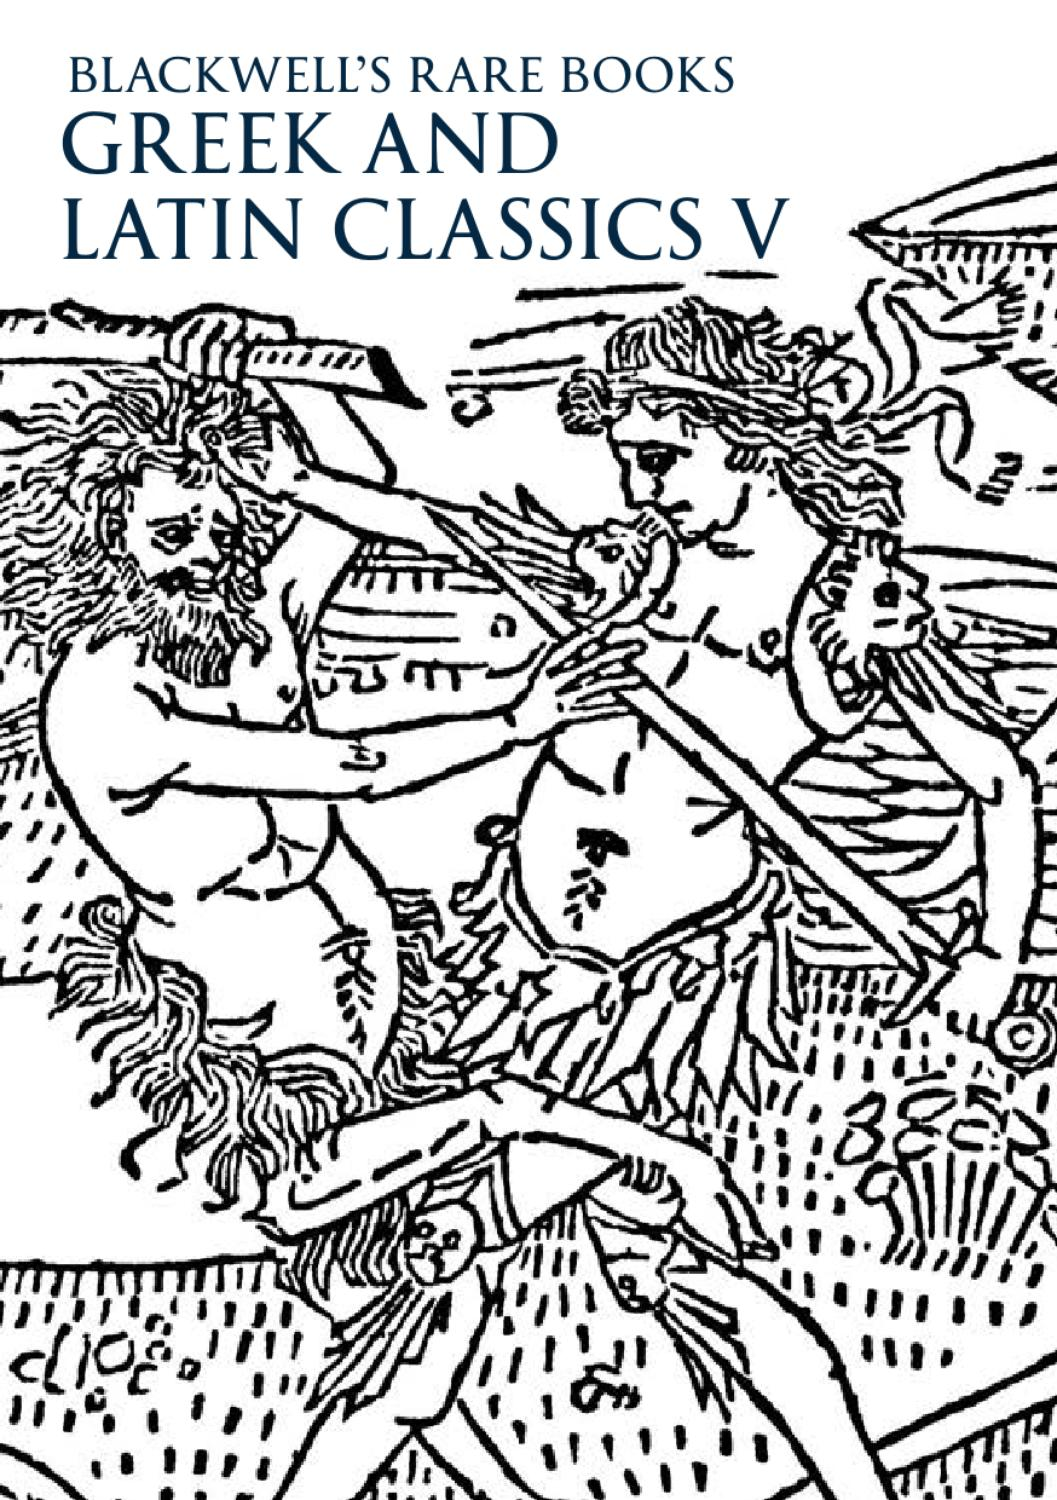 Natura Arte Aucta Translation Greek And Latin Classics V By Blackwell S Issuu